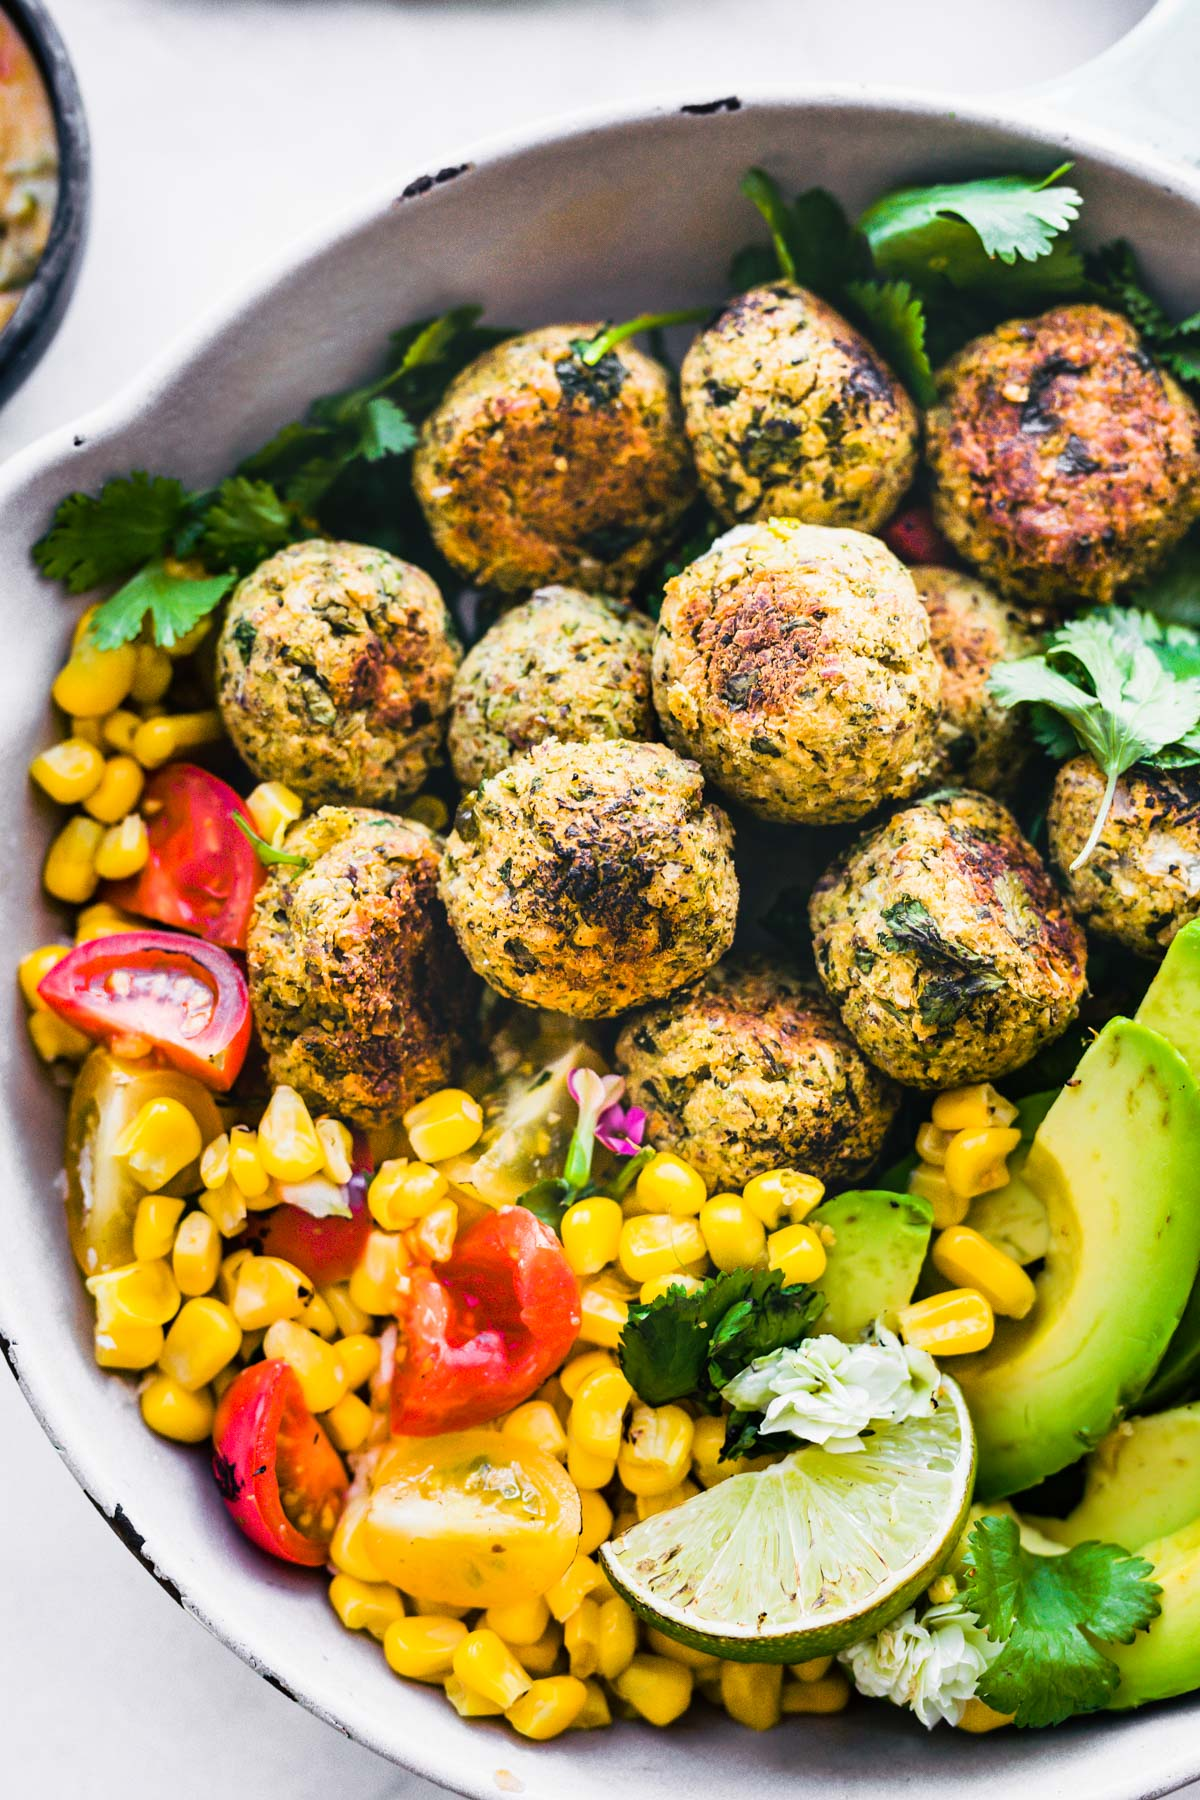 150 Fast and Simple Healthy Recipes Zone Perfect Meals in Minutes